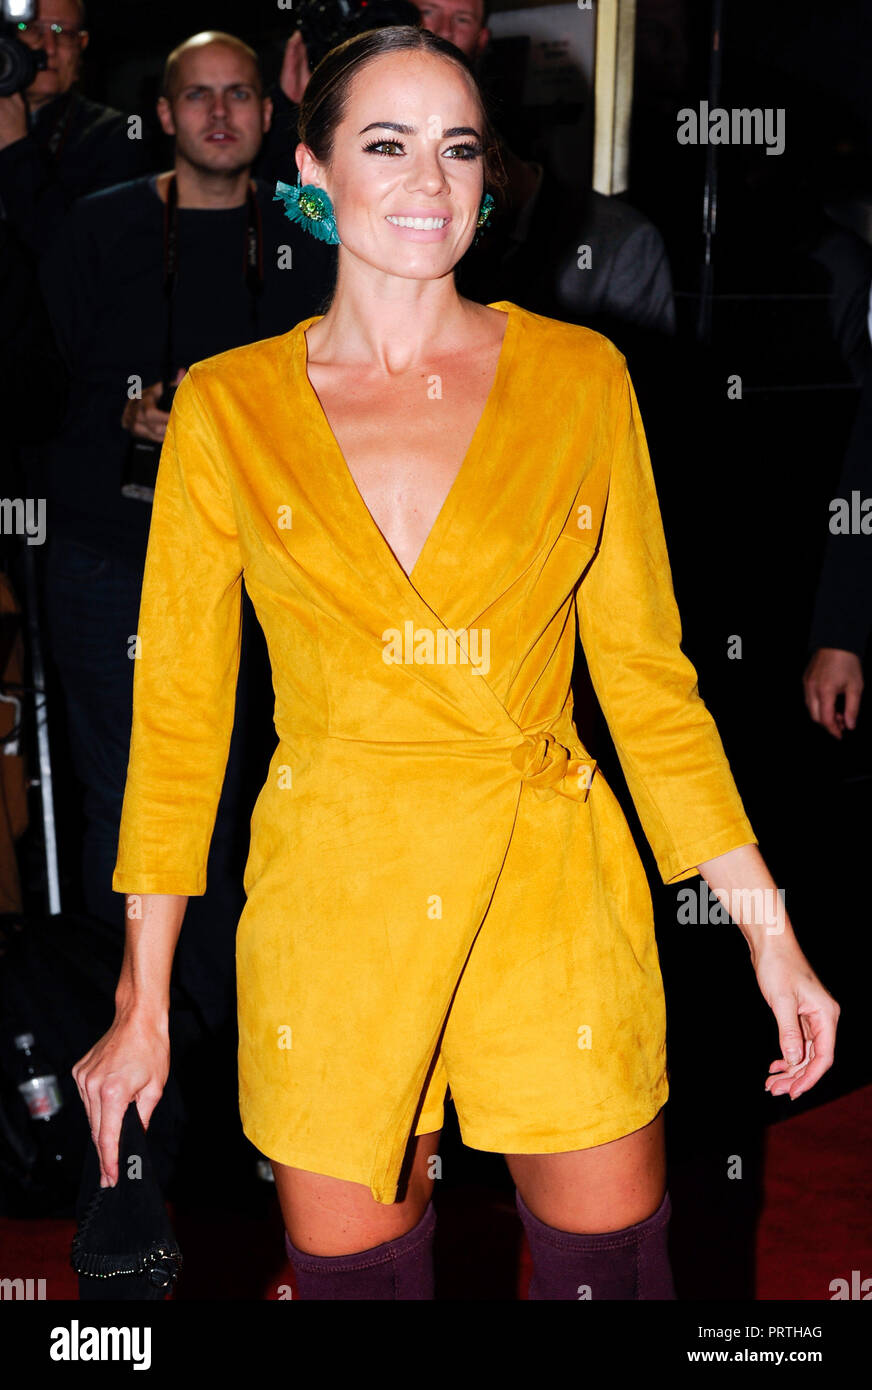 Photo Must Be Credited ©Alpha Press 080011 03/10/2018 Emma Conybeare at a Special Screening of Johnny English Strikes Again held at Curzon Mayfair in London. - Stock Image